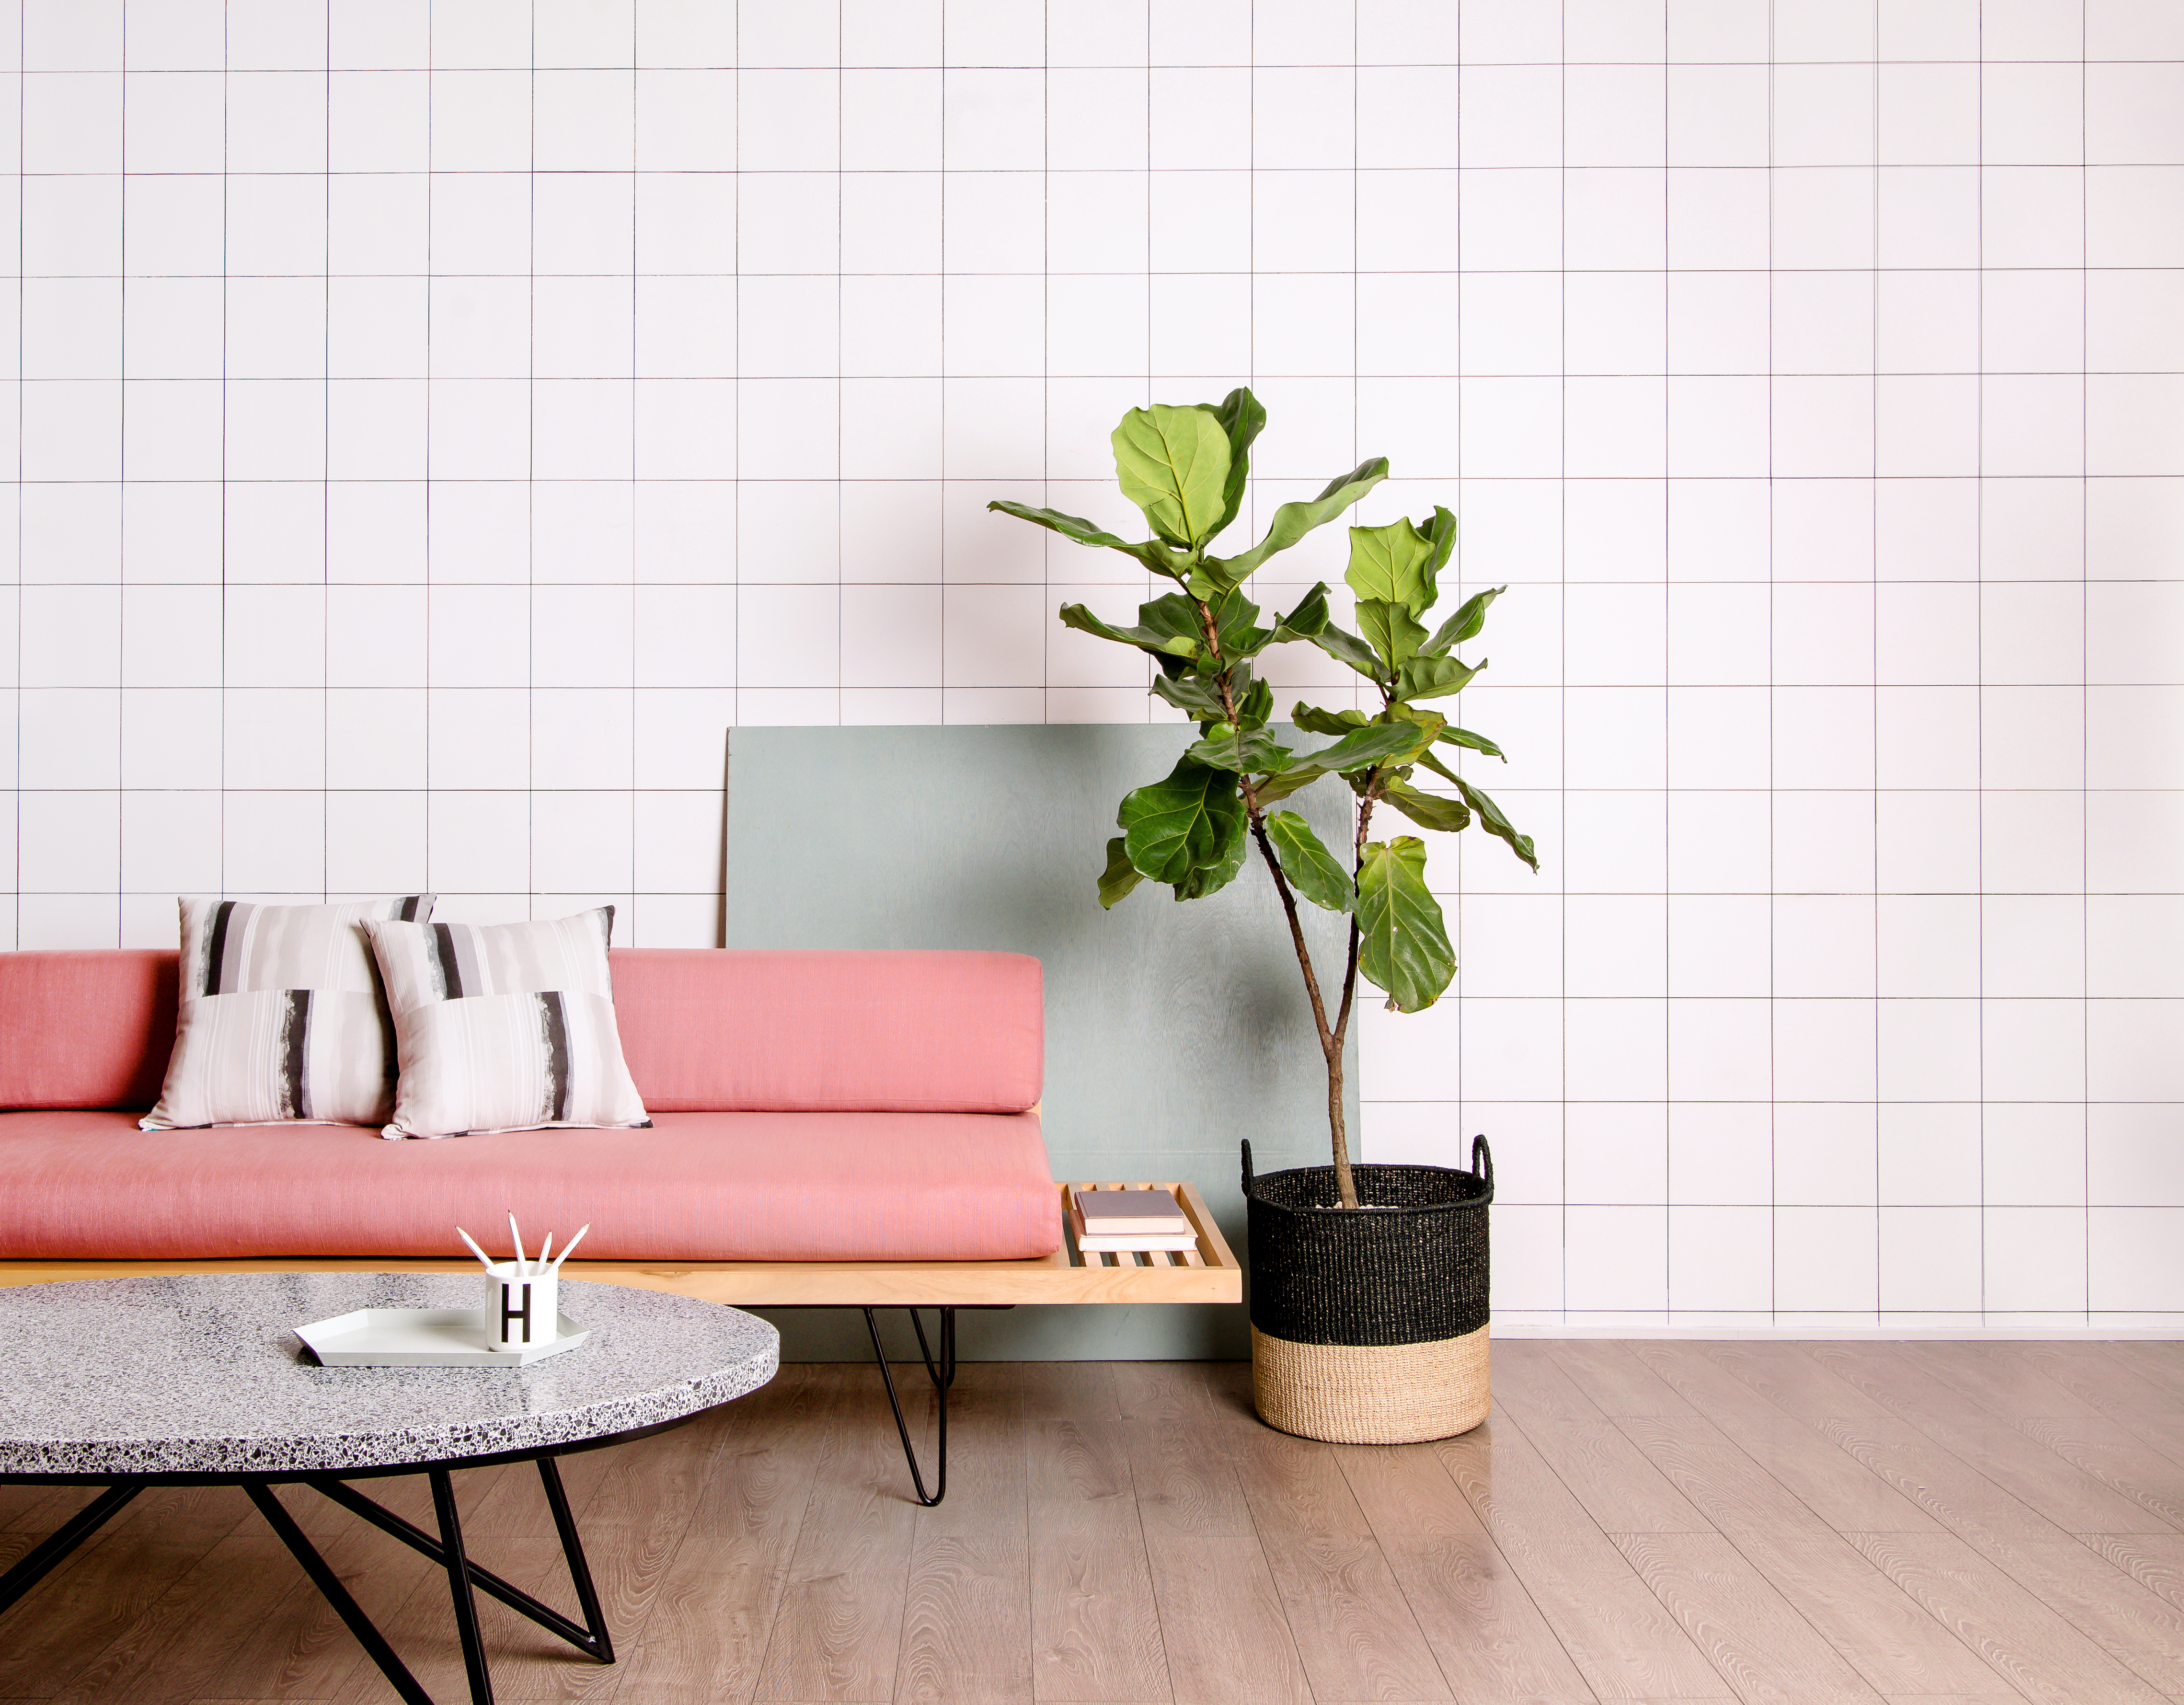 Interior Design for Millennials 101: Bringing Your Favorite House Pegs to Life